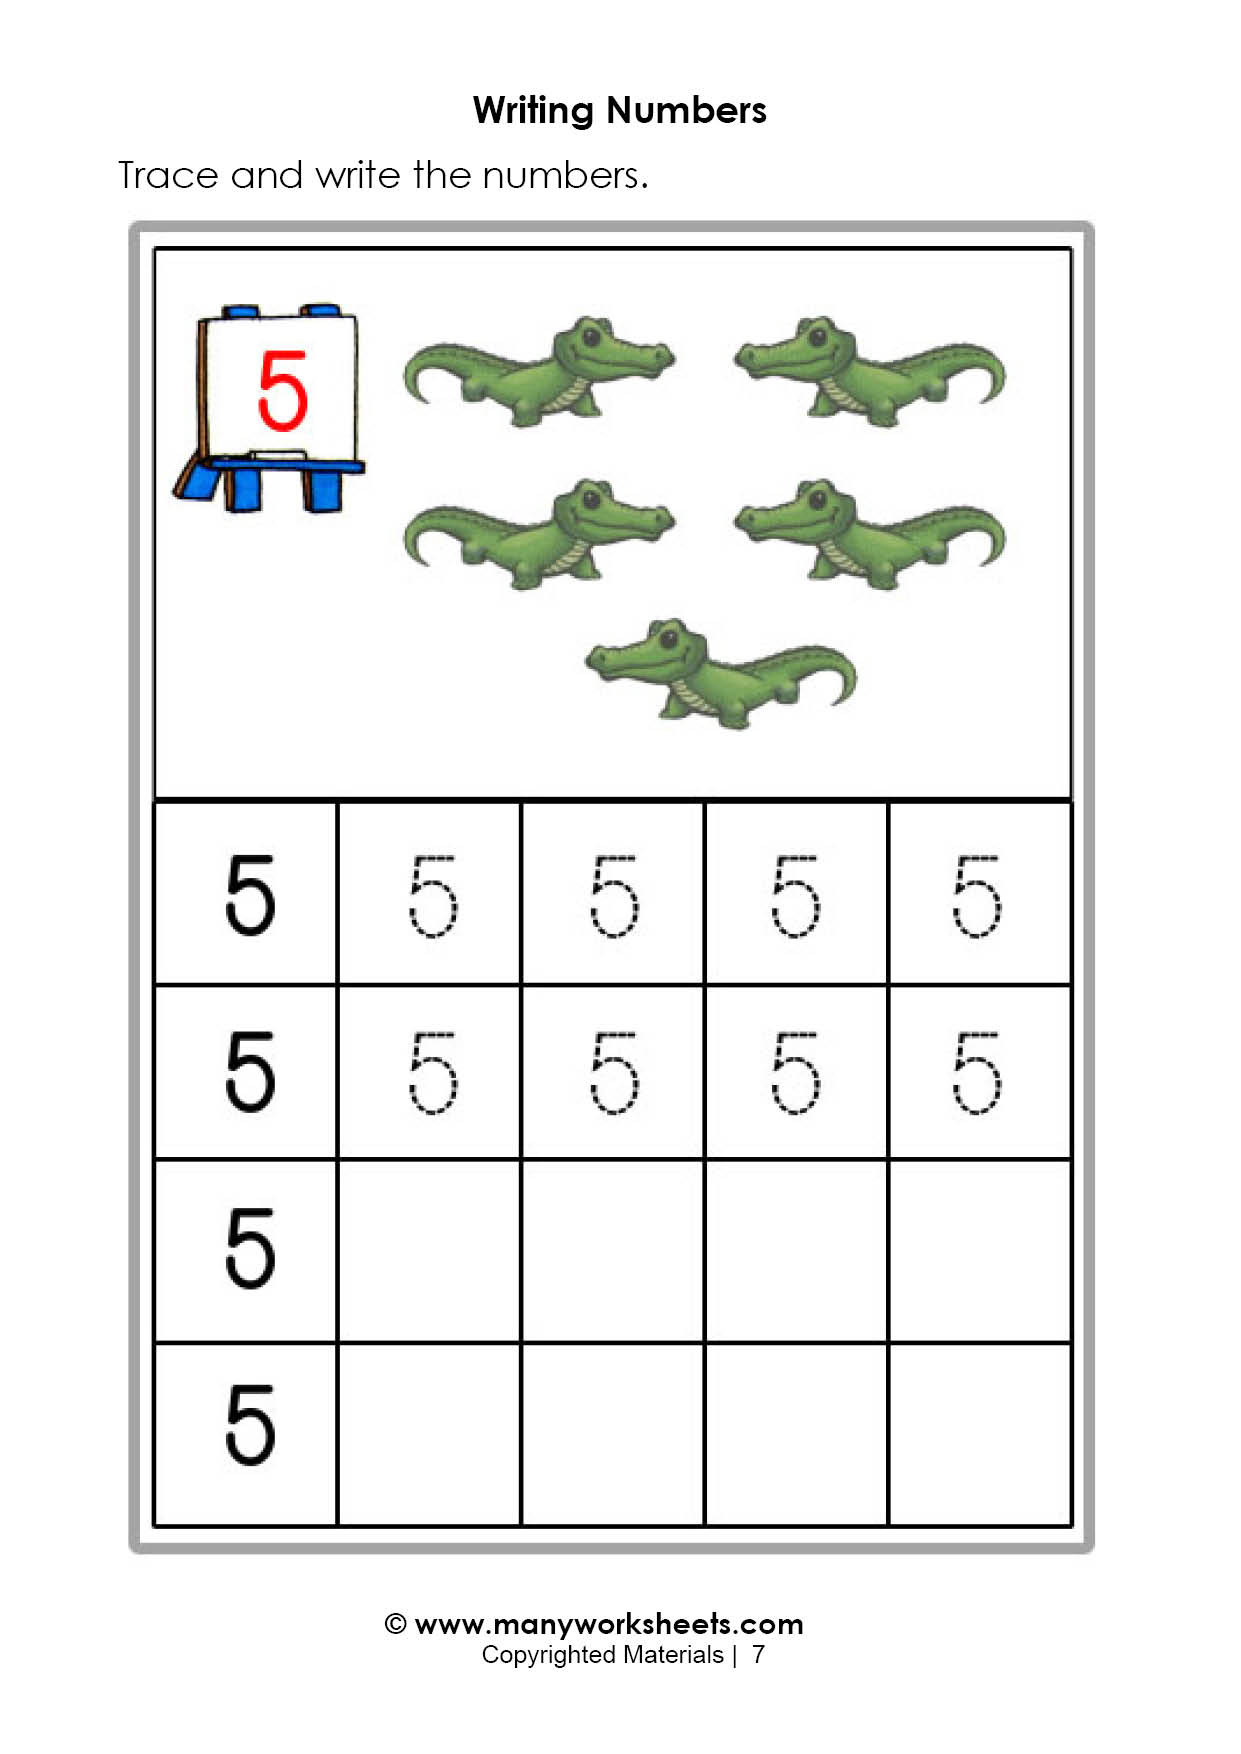 Writing Numbers 1 10 Worksheets Tracing and Writing Number 5